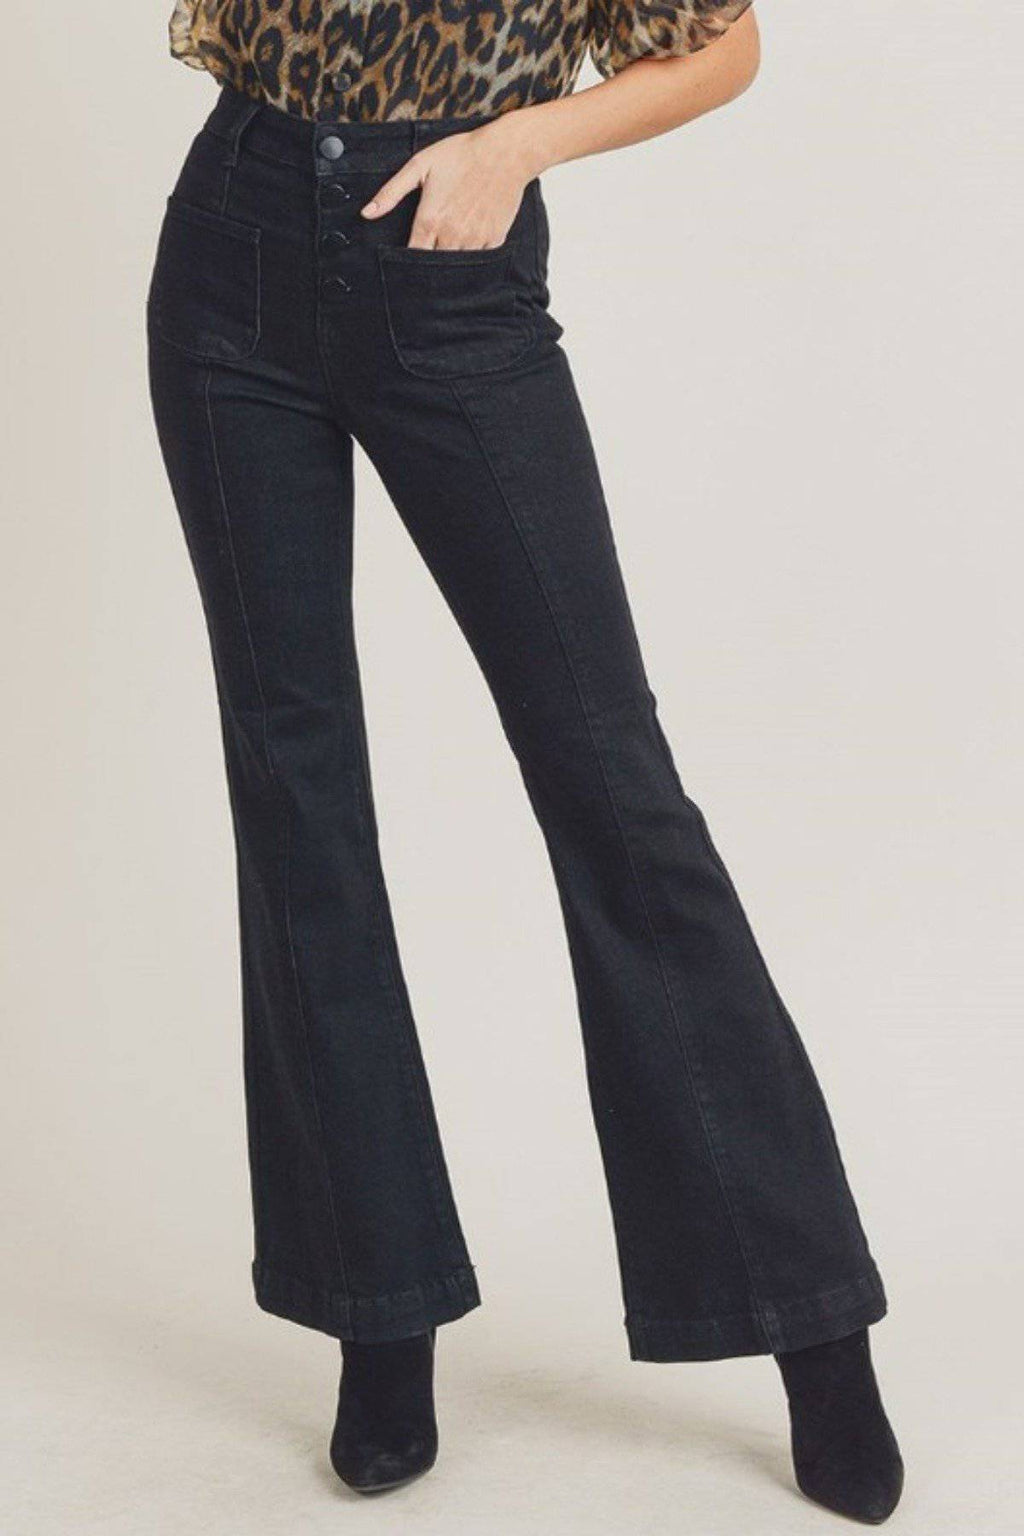 FULL OF LIFE HIGH RISE BELL BOTTOM JEANS - [jayden_p]